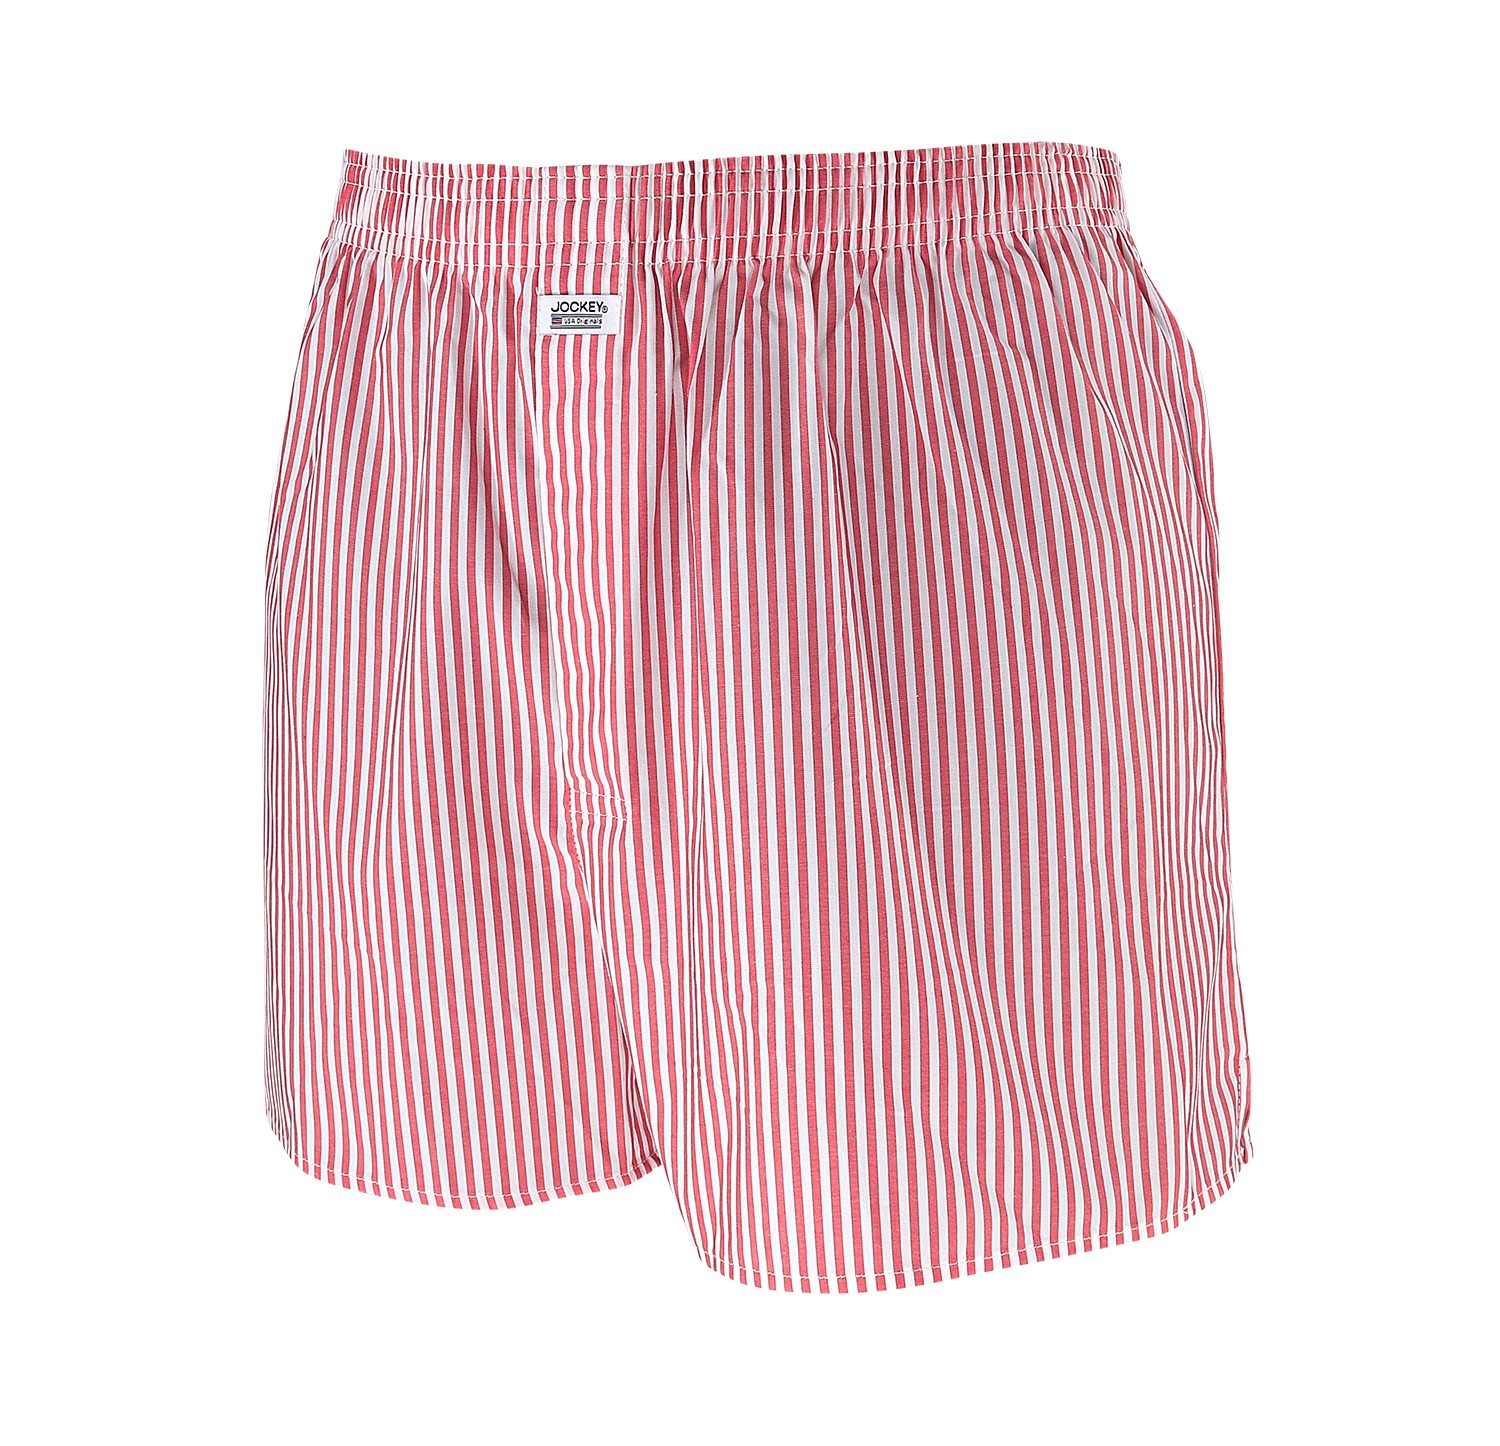 Detail Image to Red striped boxershorts for men by Jockey in oversizes up to 6XL